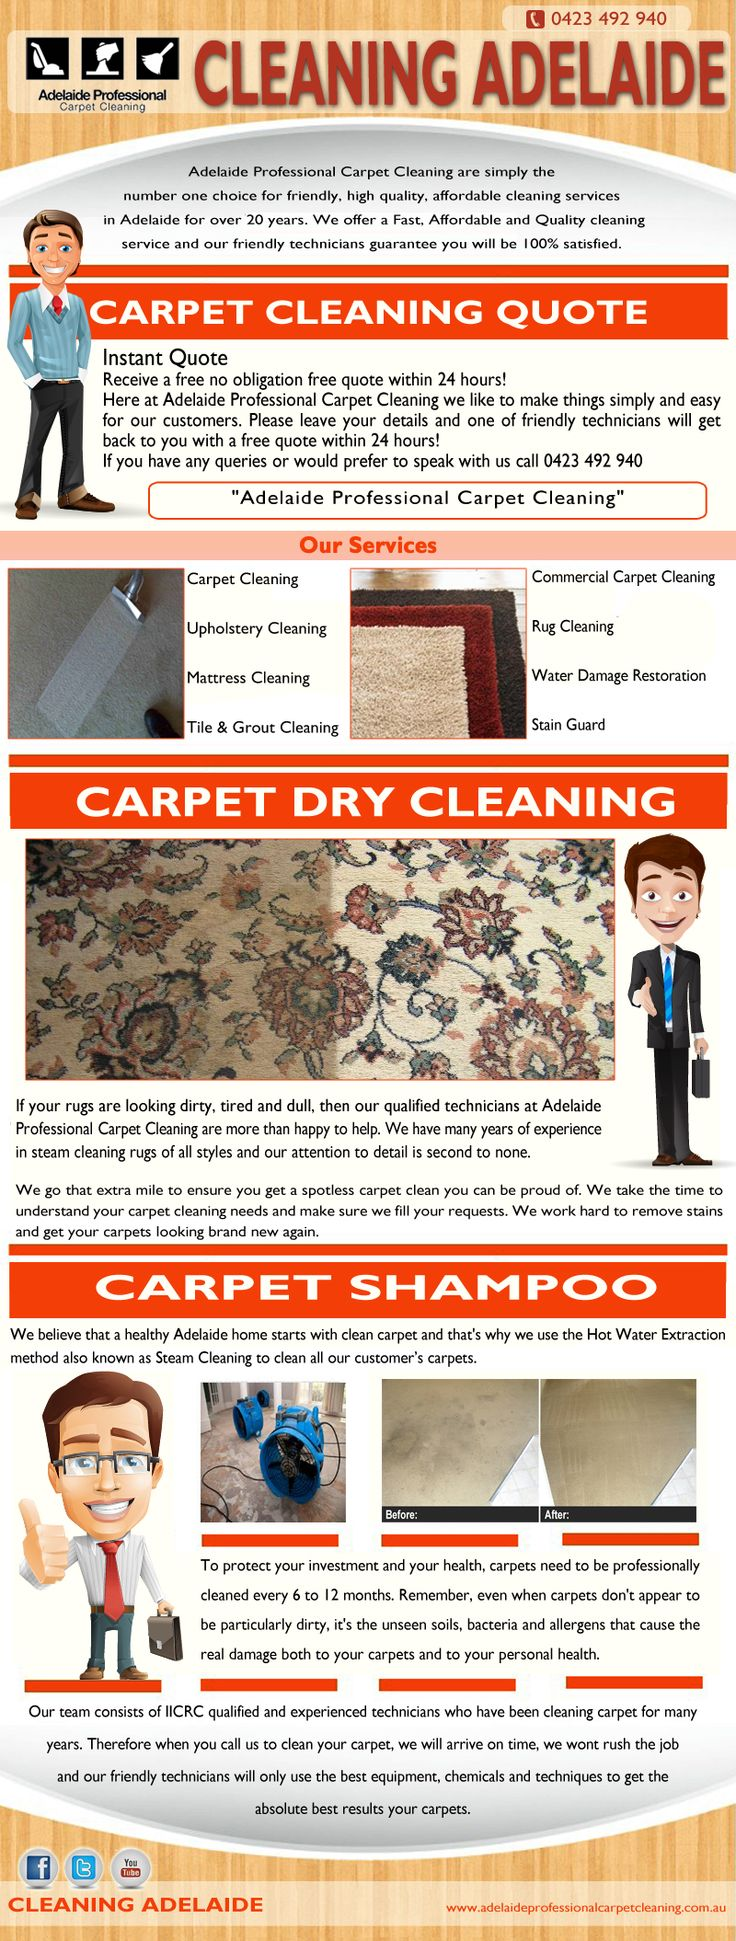 Visit this site http://adelaideprofessionalcarpetcleaning.com.au/ for more information on Cleaning Adelaide. Cleaning Adelaide is important in helping to maintain good health in your home. Carpets are expensive, and if you are a home owner who has made the investment in a new carpet .